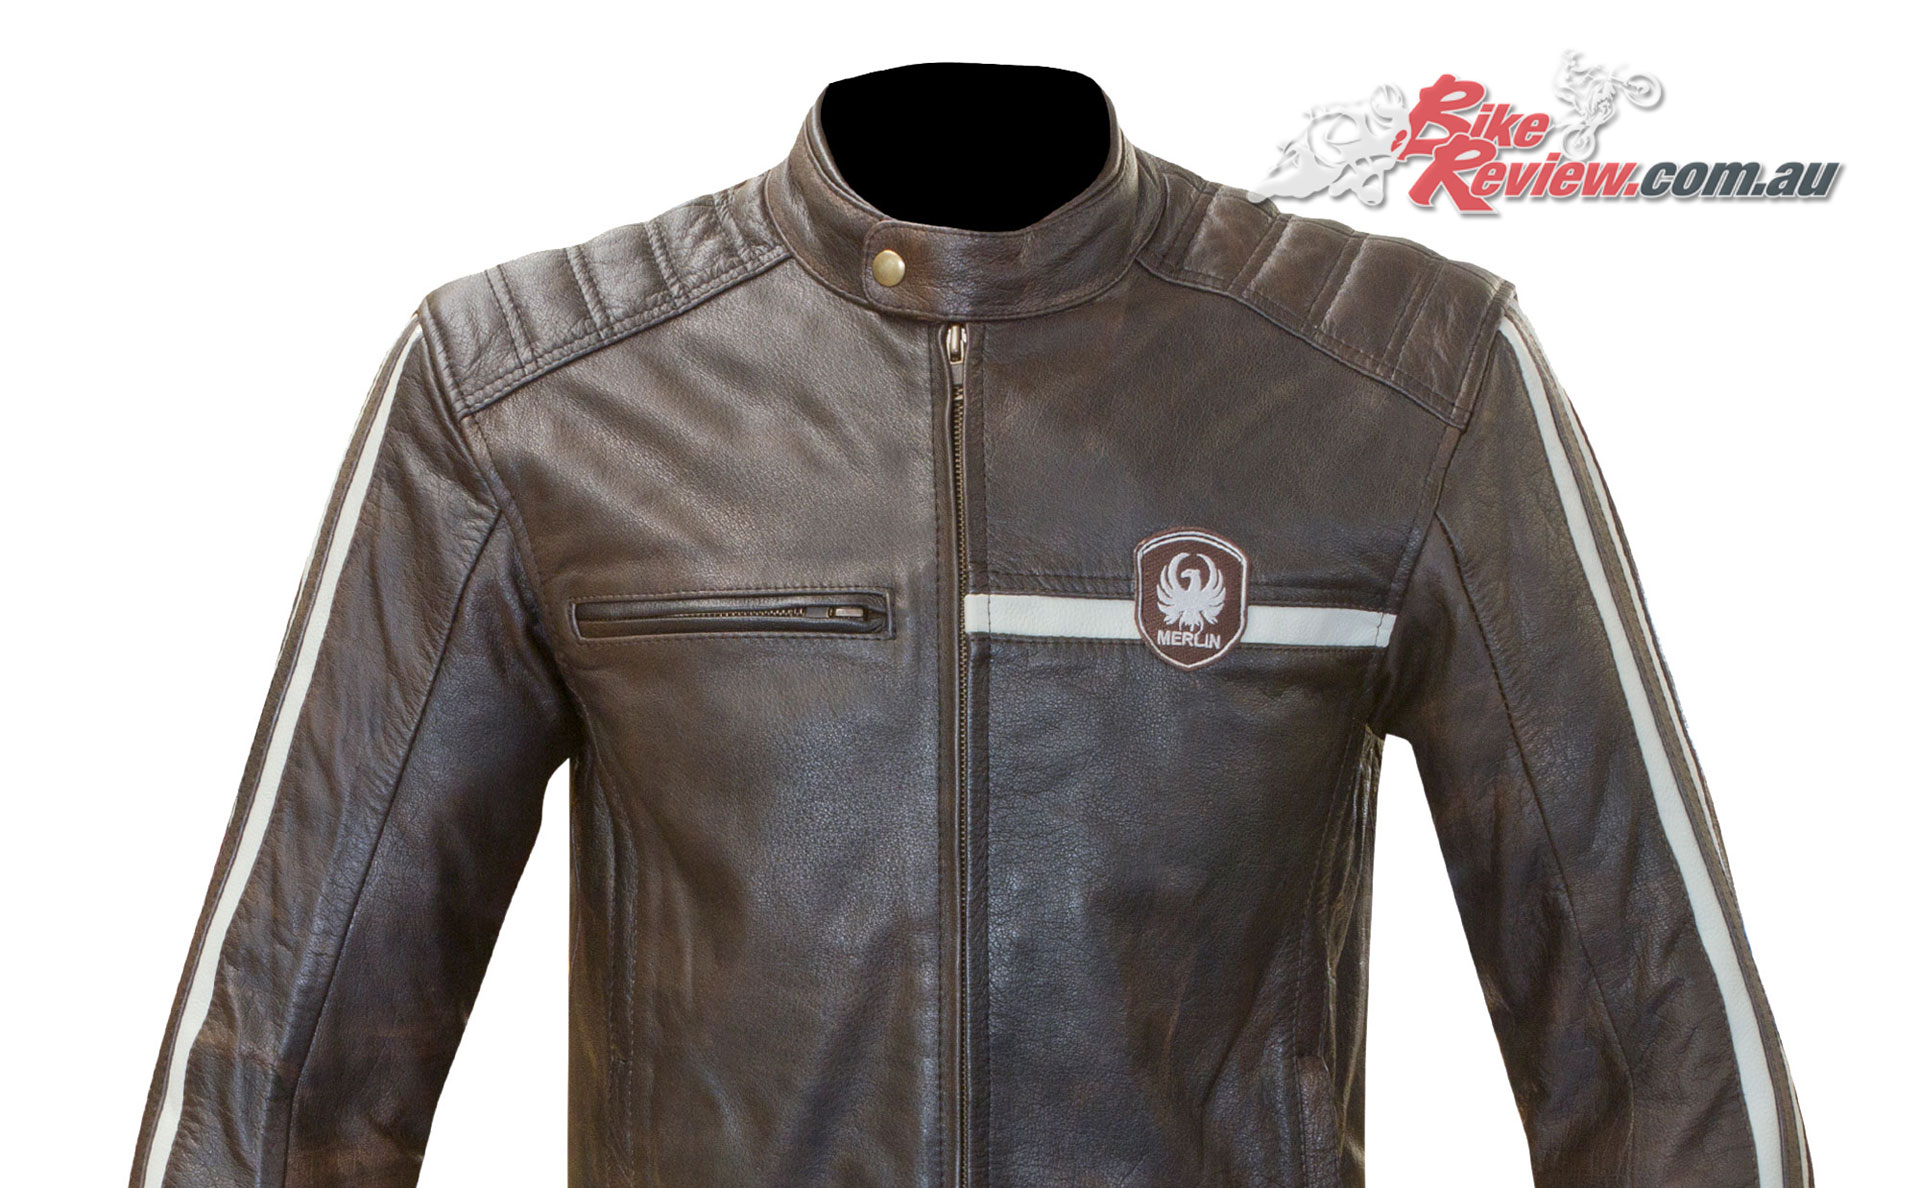 Merling Derrington Jacket available now in Oz for $499 RRP